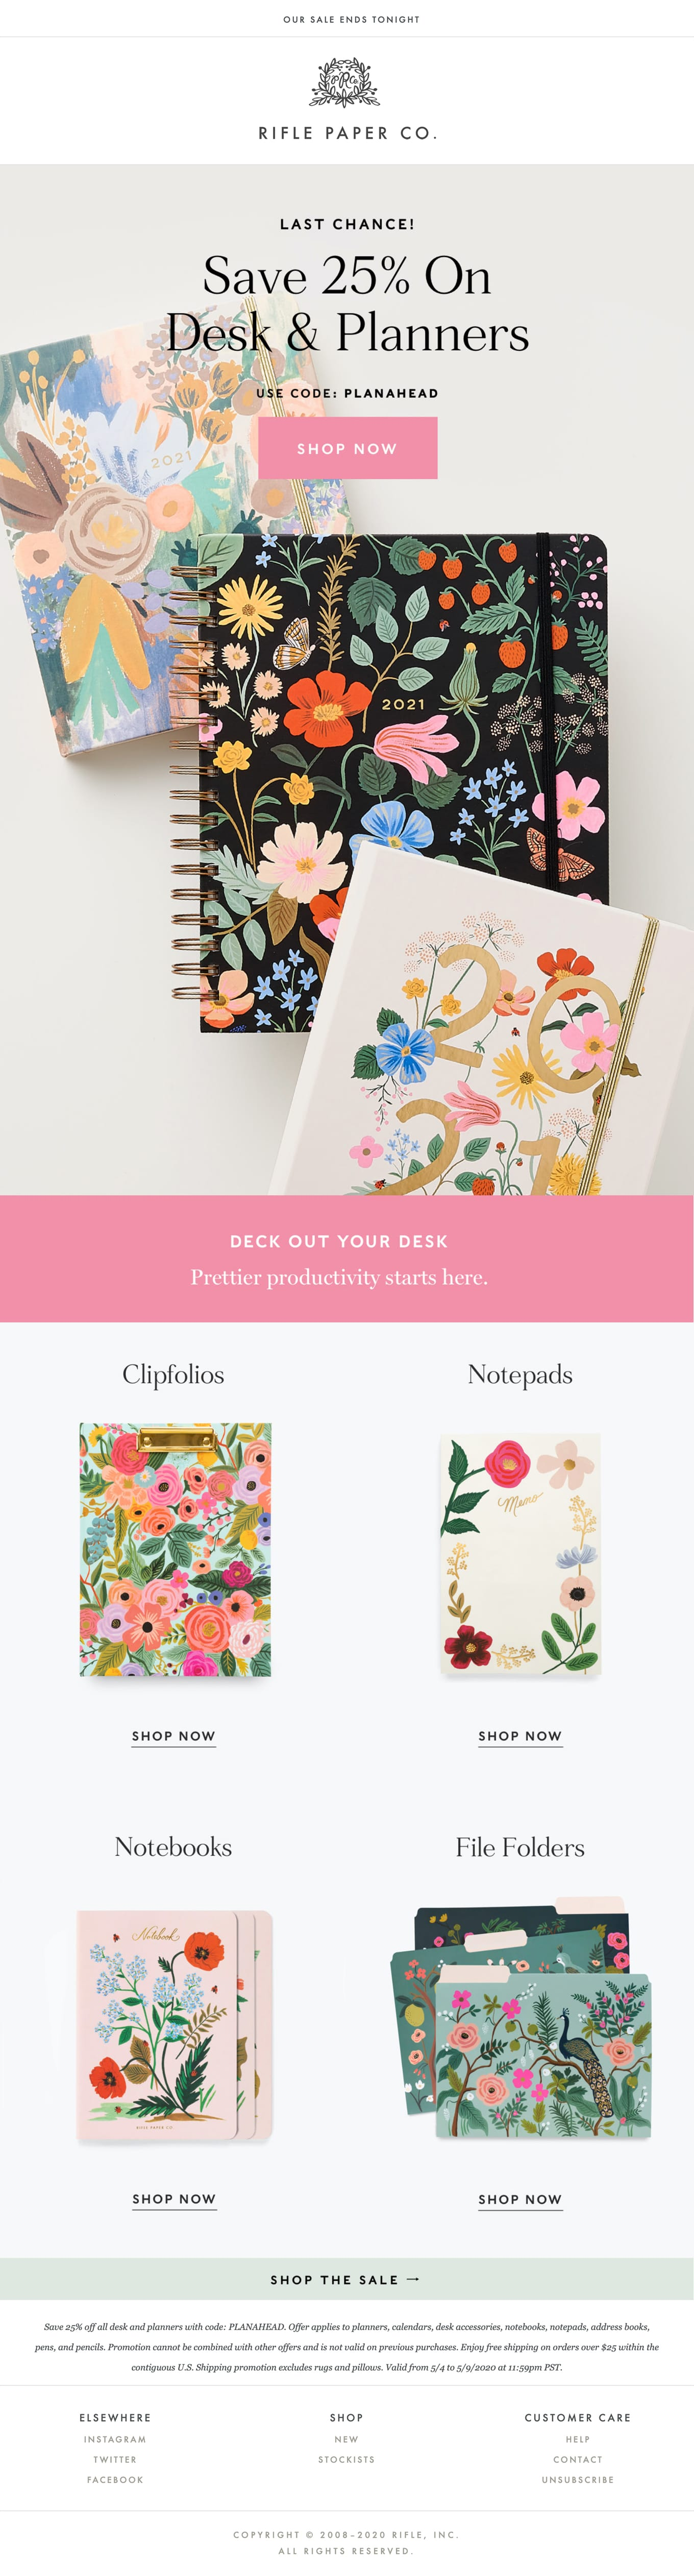 Save 25% On Planners! Email Screenshot